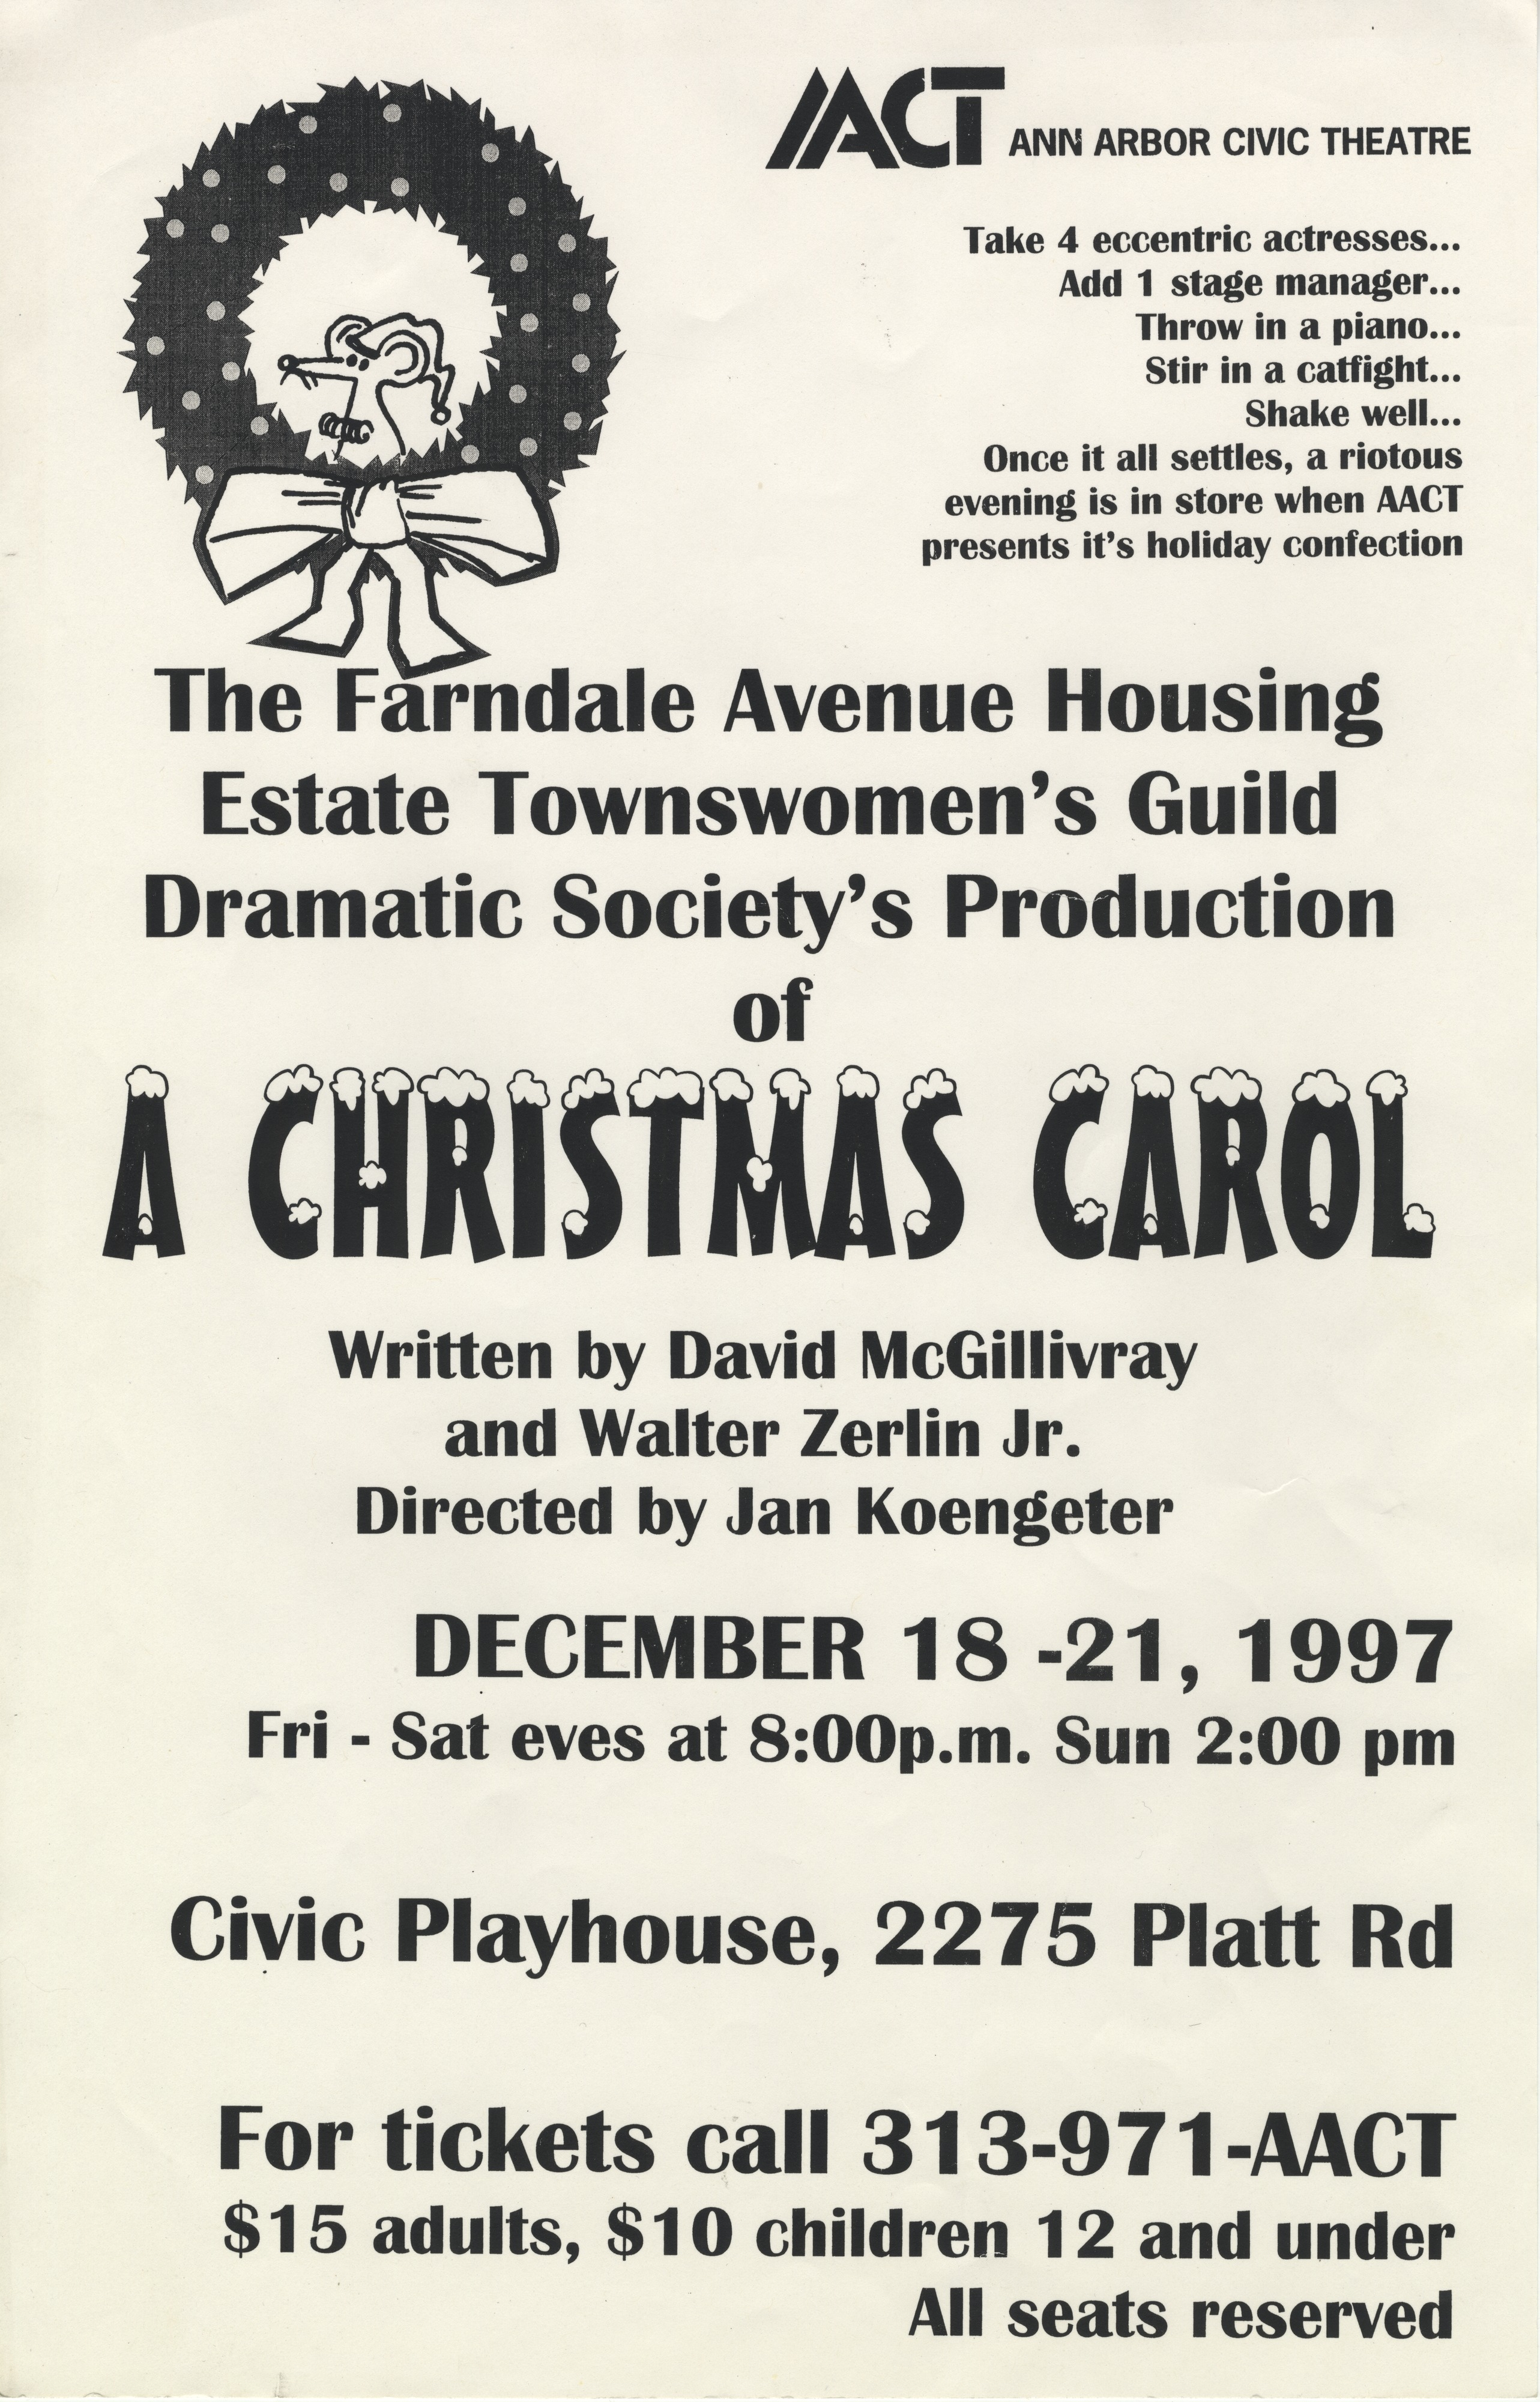 Ann Arbor Civic Theatre Poster: A Christmas Carol image